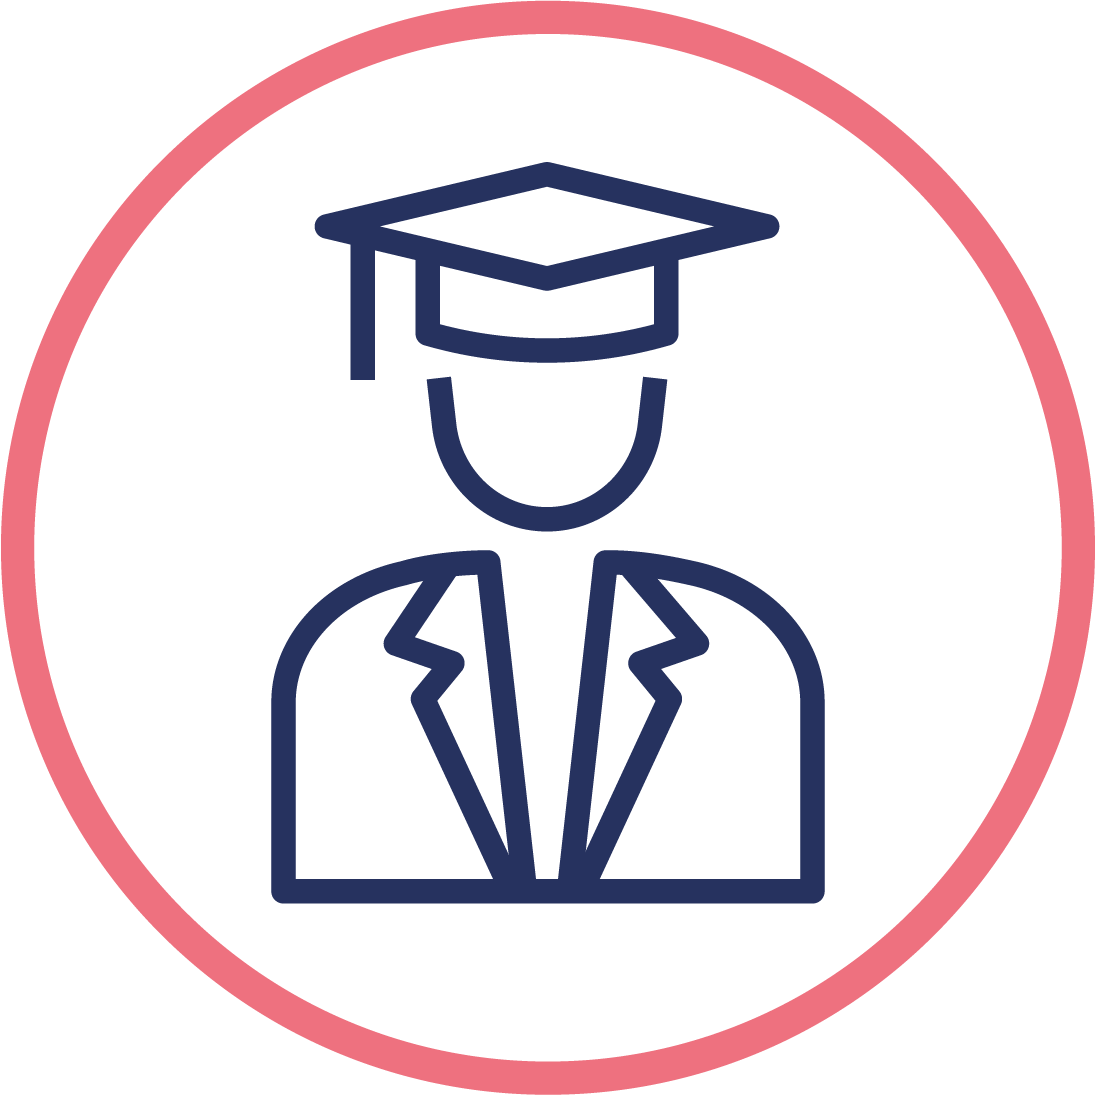 Youth employment programme graduate icon